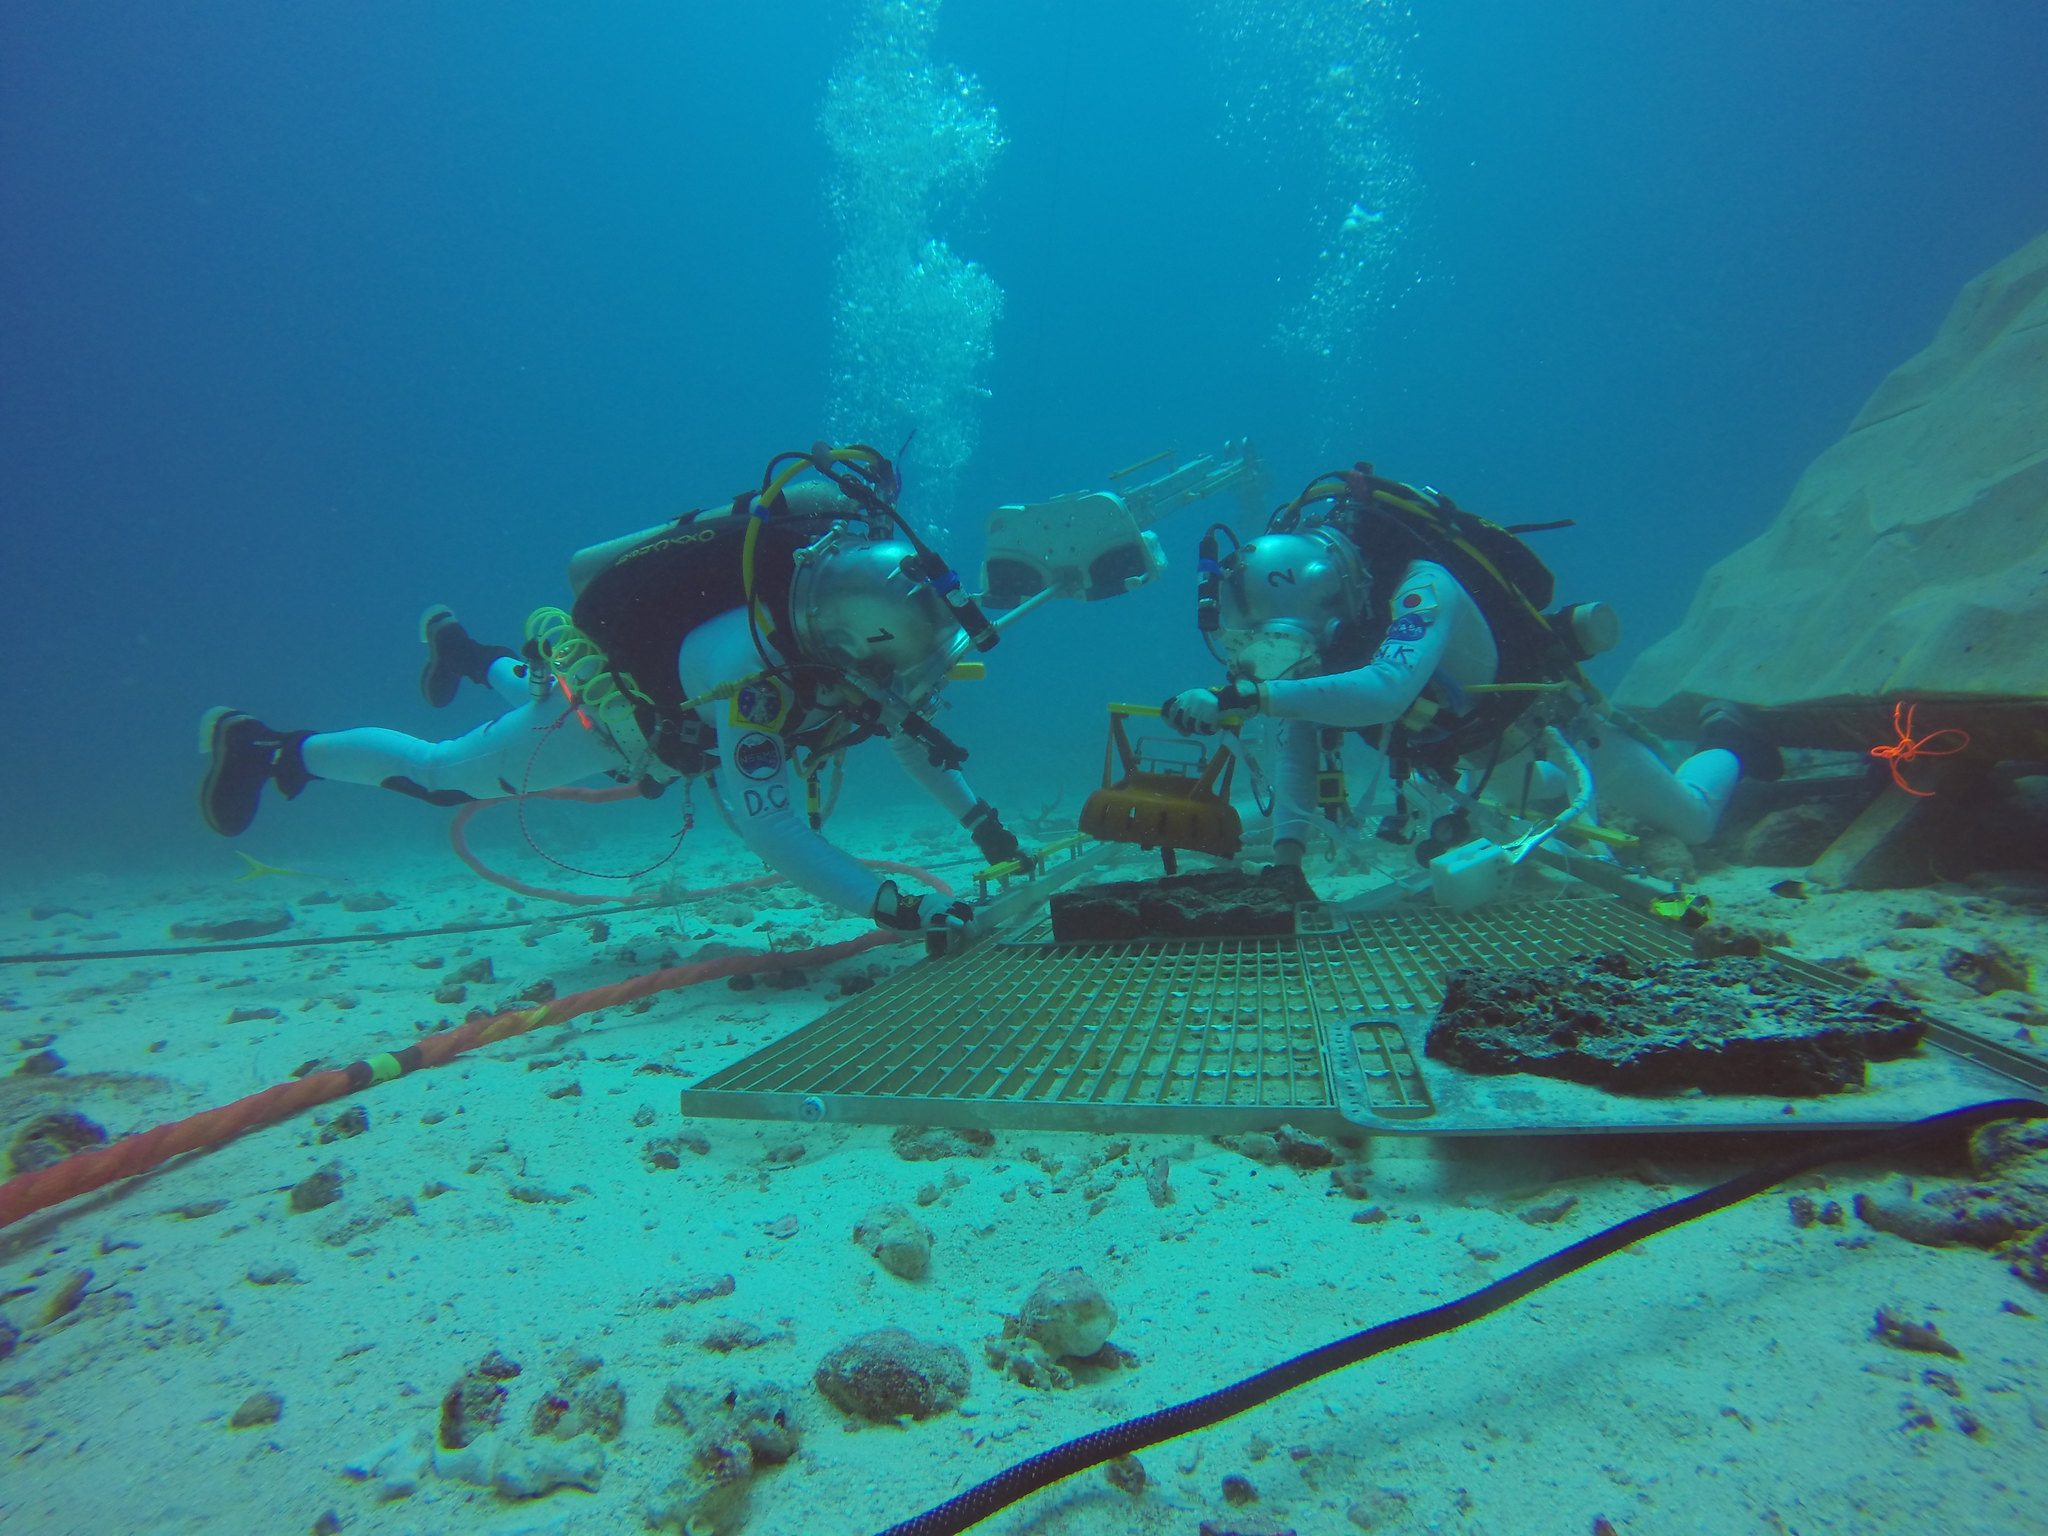 Crew attaching JPL's microspine to a rock to use for body stabilization while collecting samples (Photo courtesy of NASA)